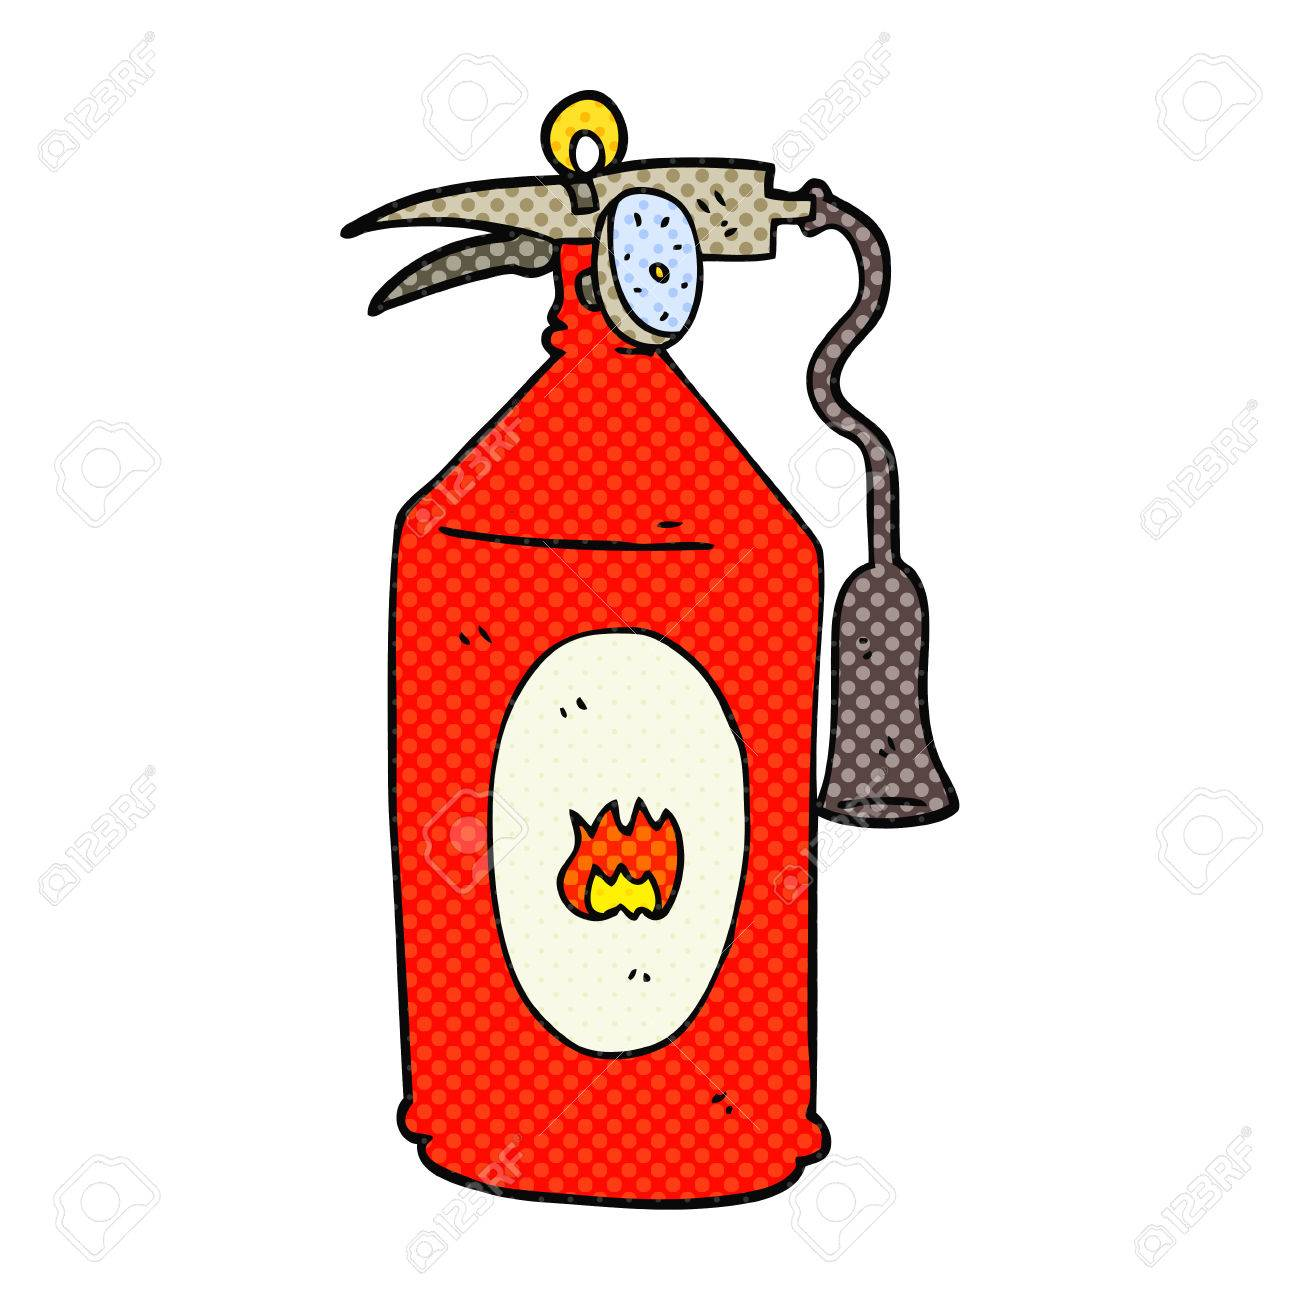 1300x1300 Clipart Fire Extinguisher Electric Brakes Wiring Diagram Lionel